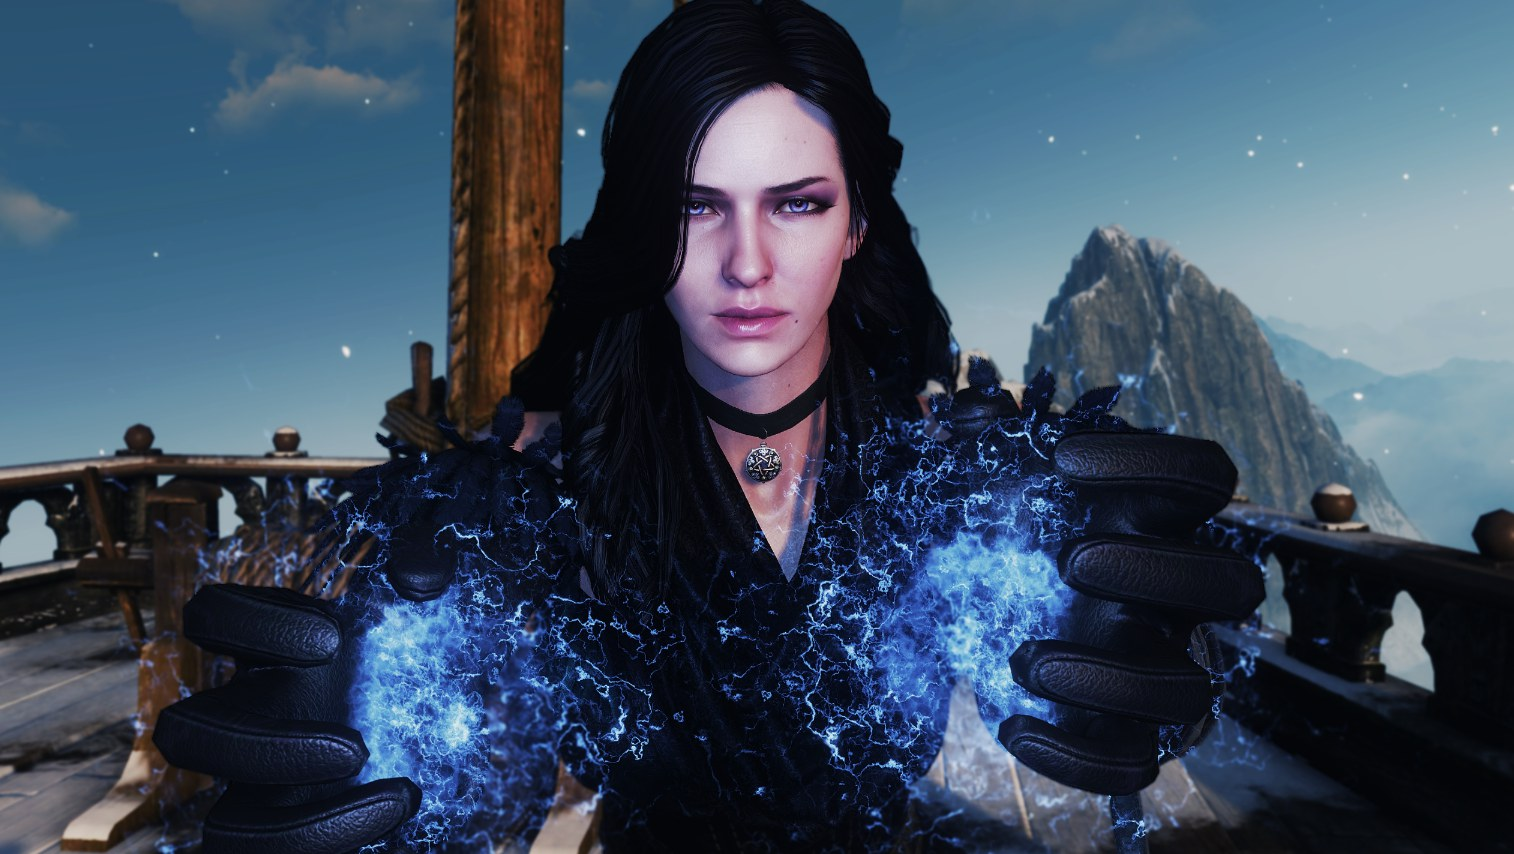 The Witcher As Ser An Anya Chalotra Como Yennefer Y